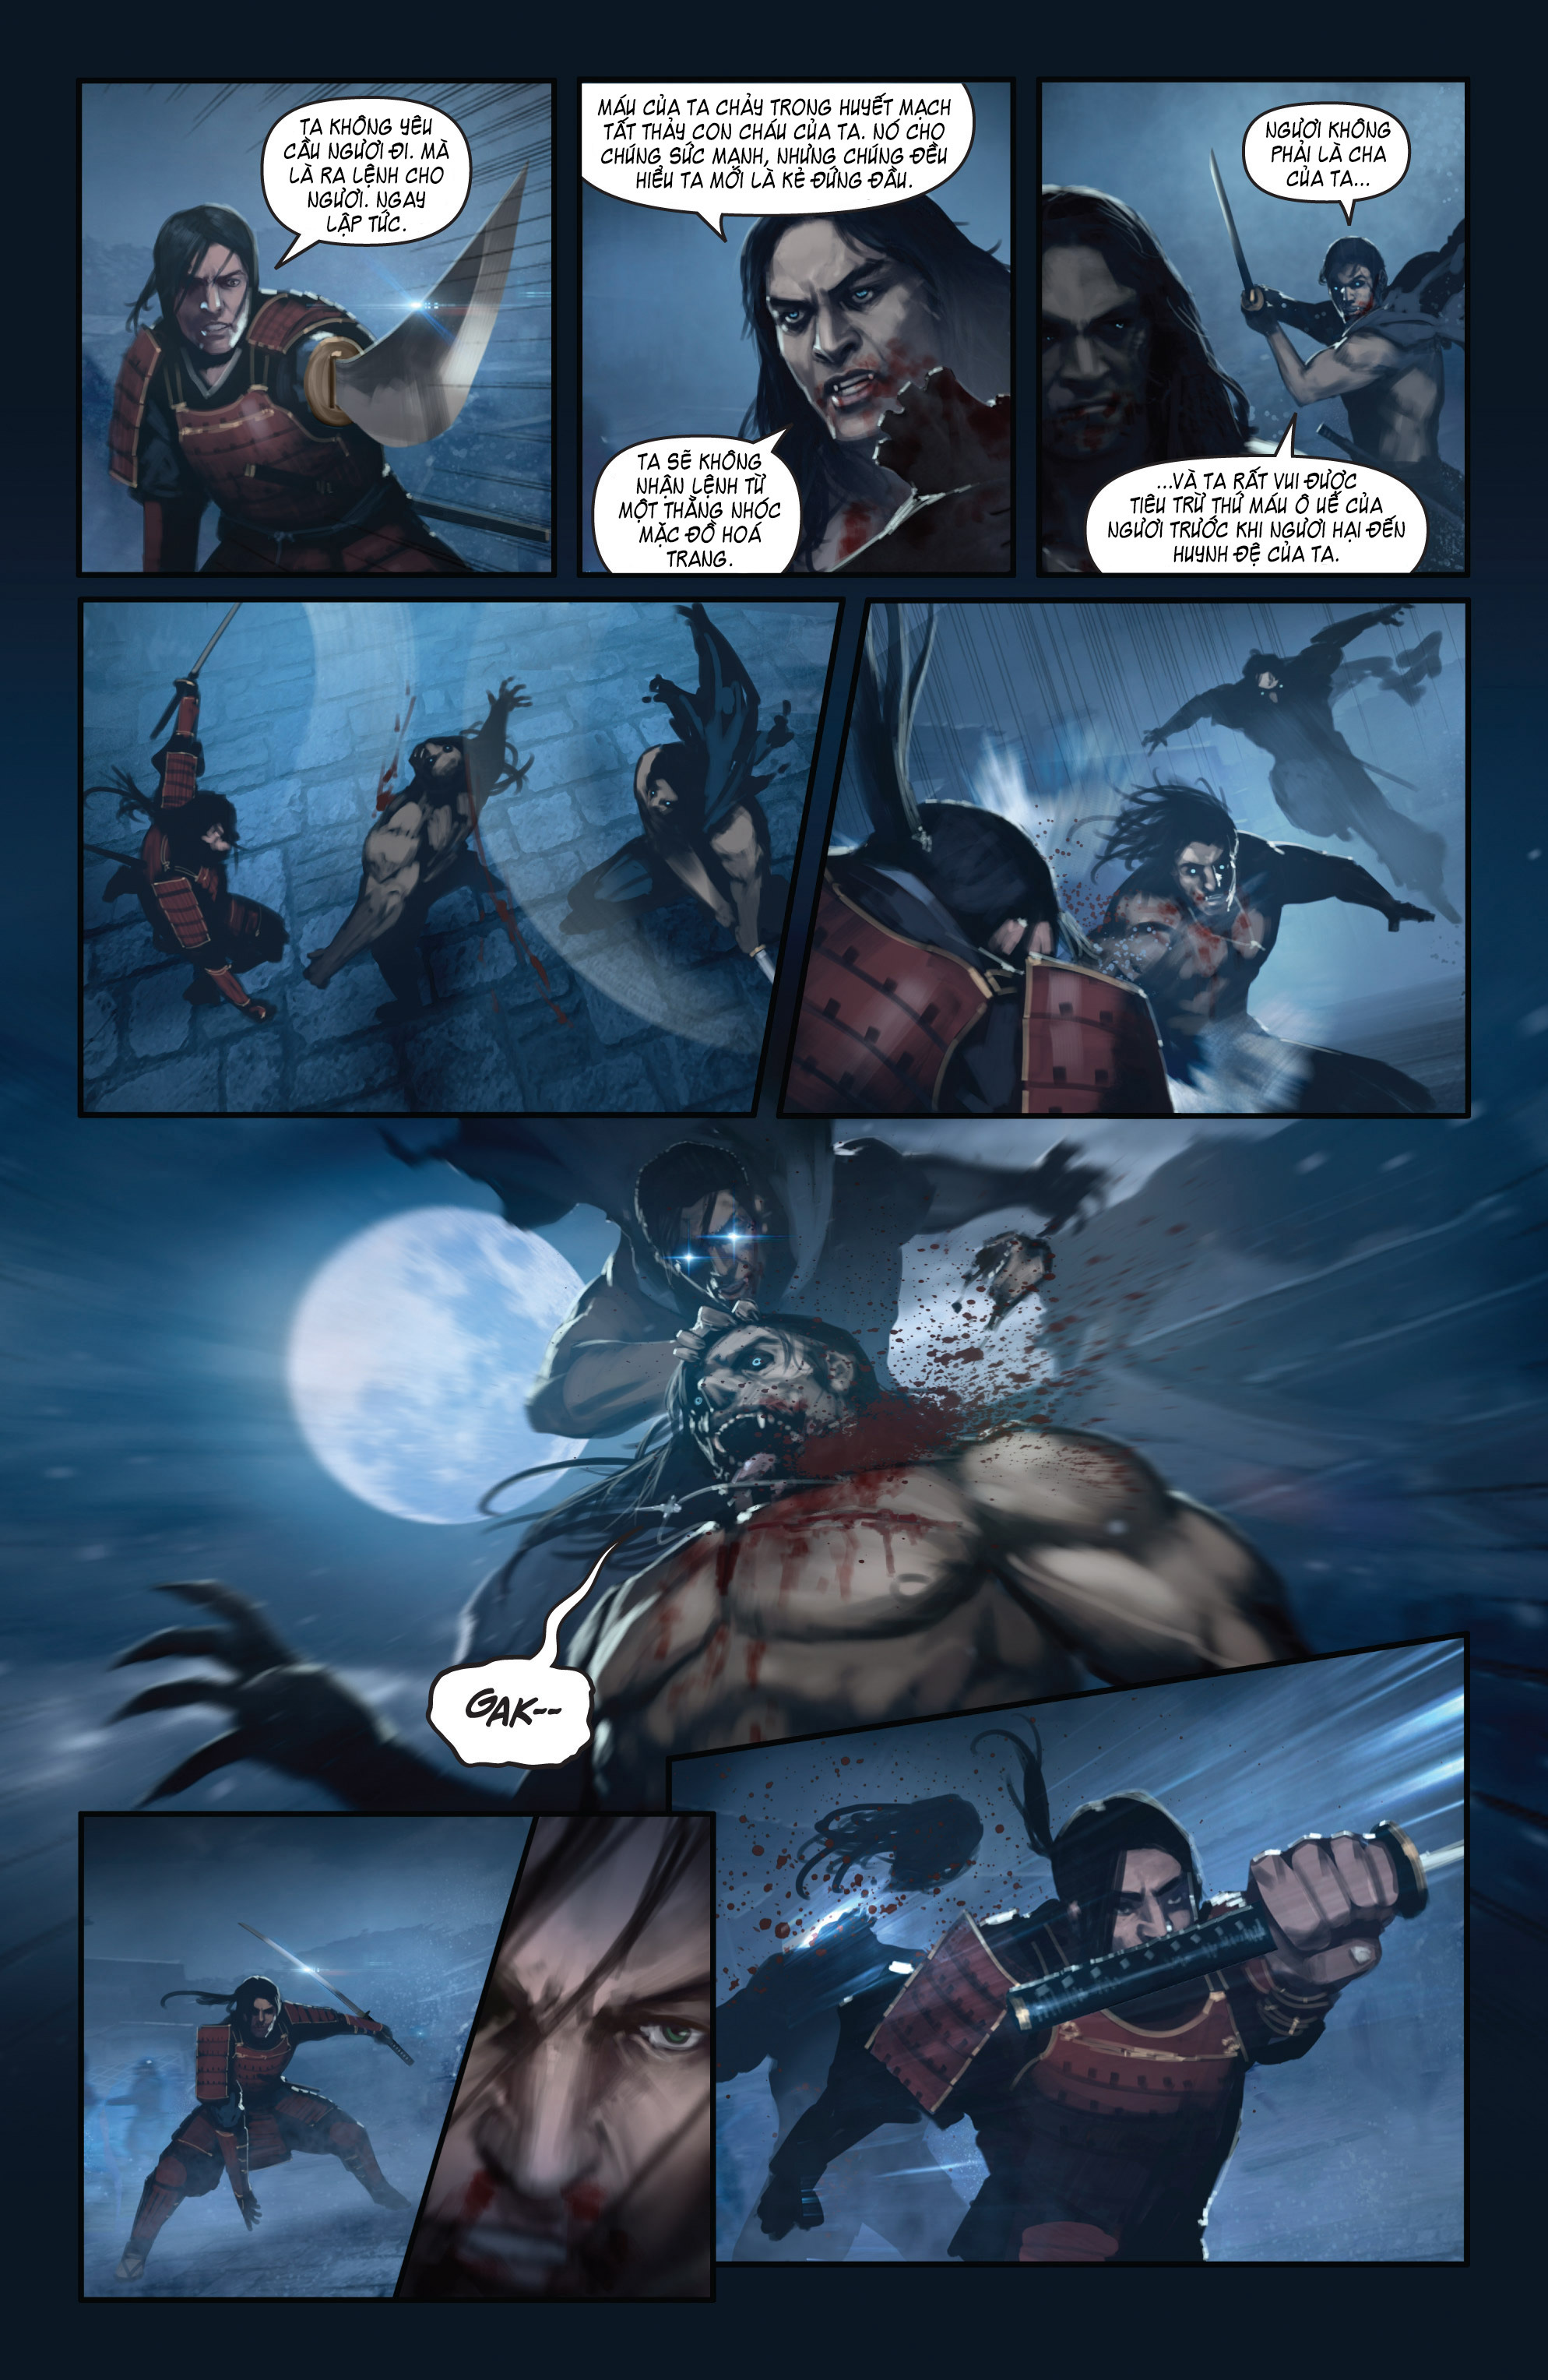 BUSHIDO - THE WAY OF THE WARRIOR chapter 5 - end trang 20